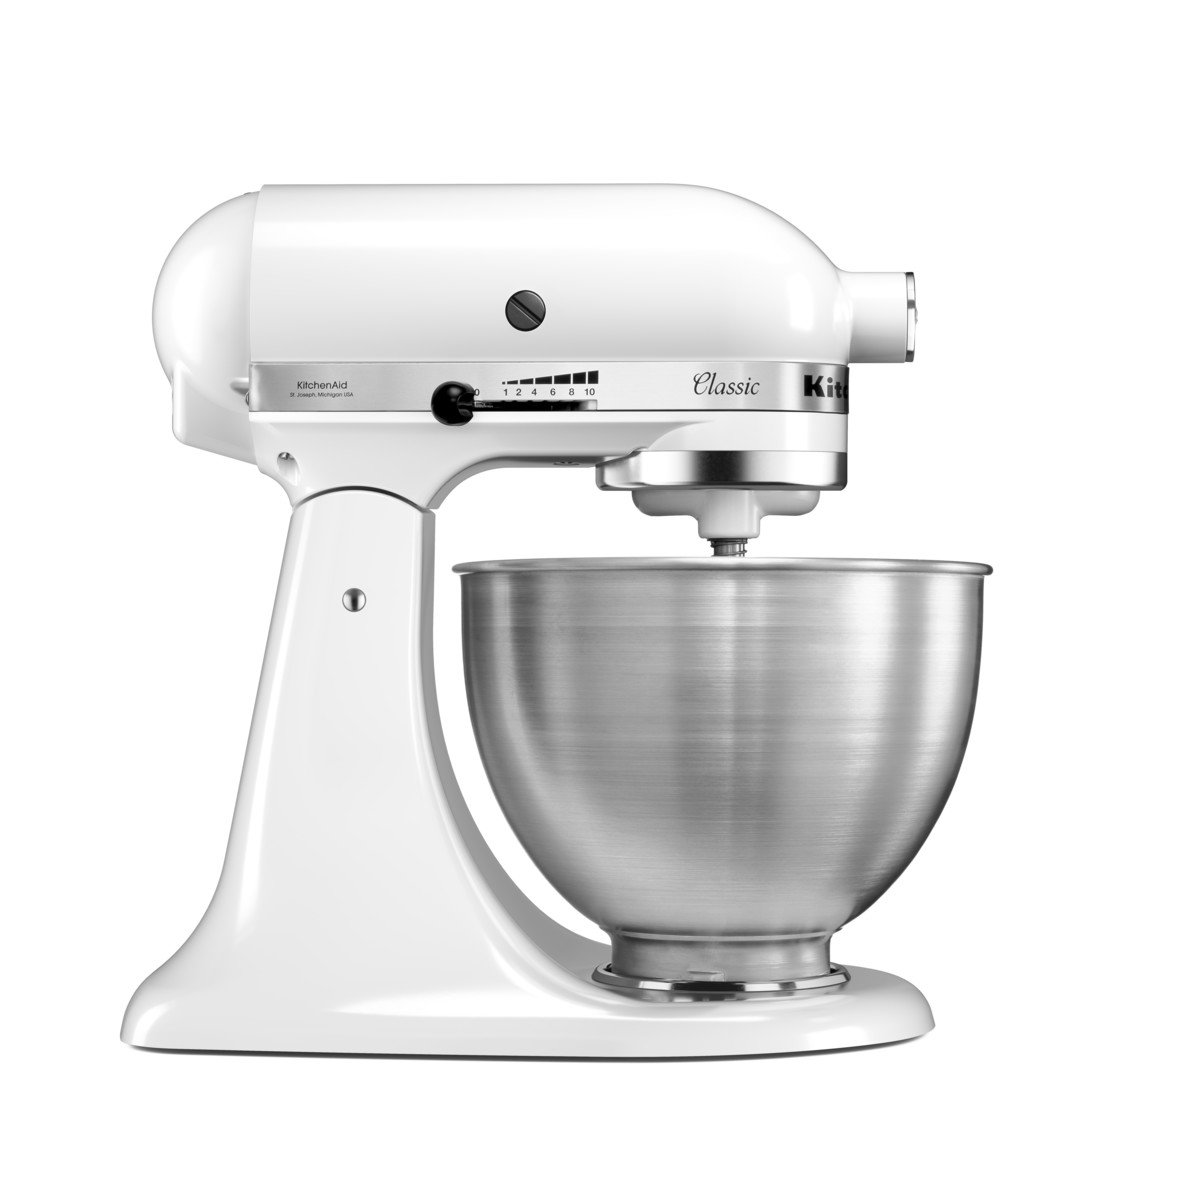 KitchenAid 5K45SSBWH Classic Stand Mixer, 4.3 Litre, White: Amazon.co.uk:  Kitchen U0026 Home